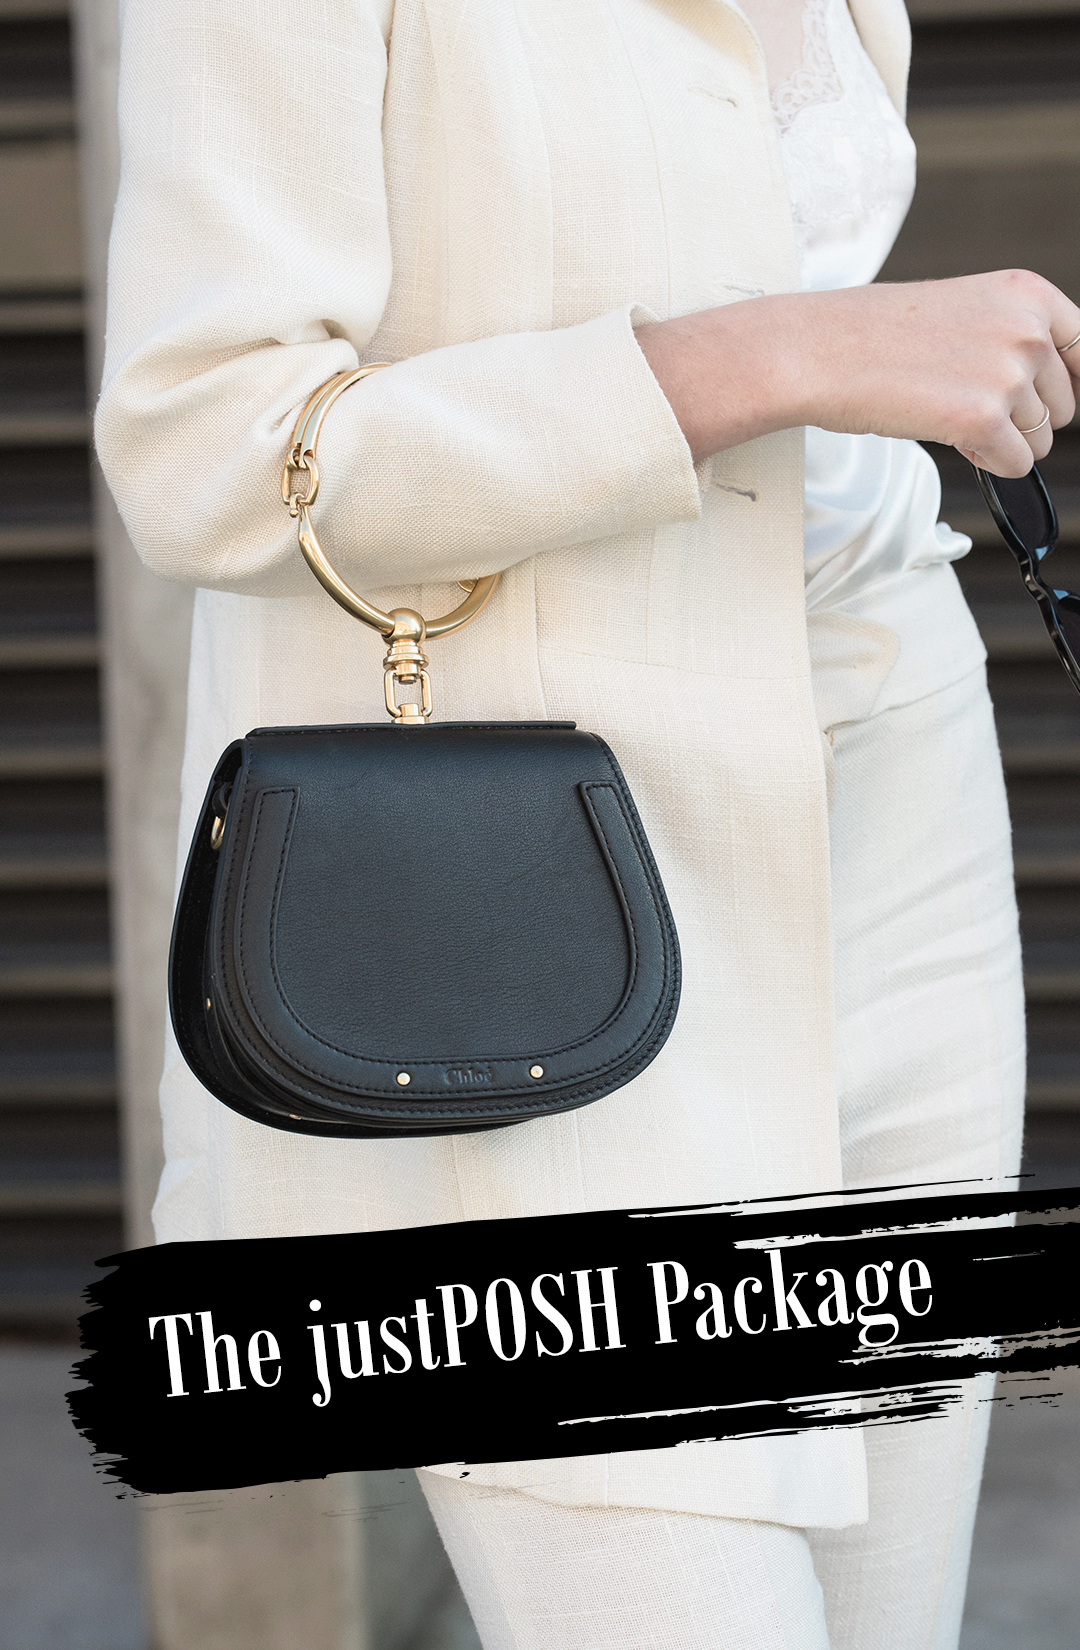 The justPOSH Package.jpg